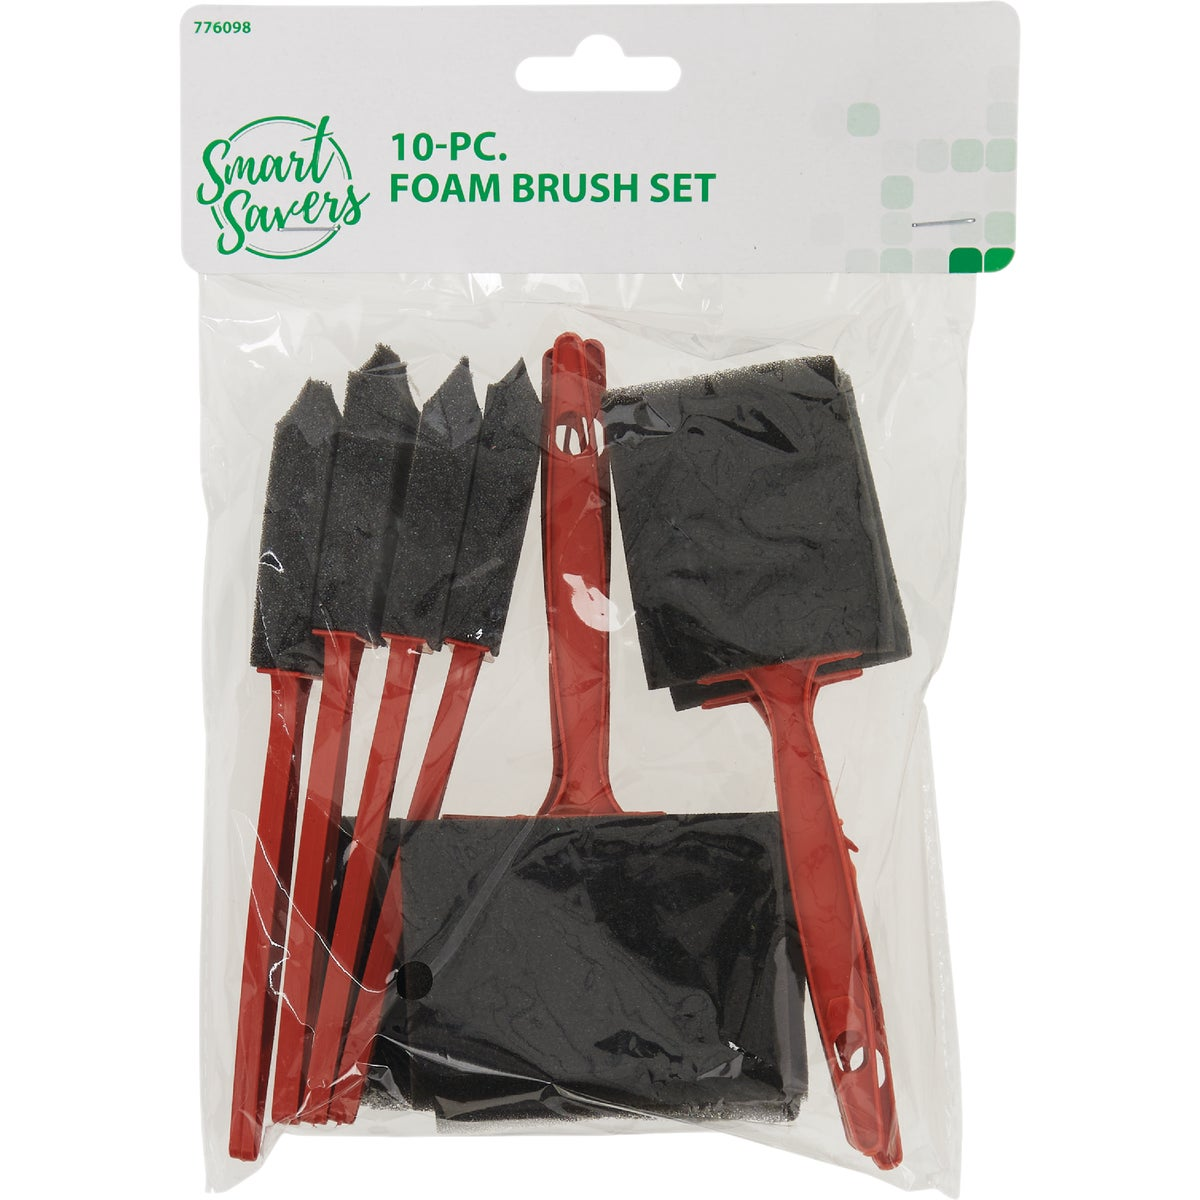 10PC FOAM BRUSH